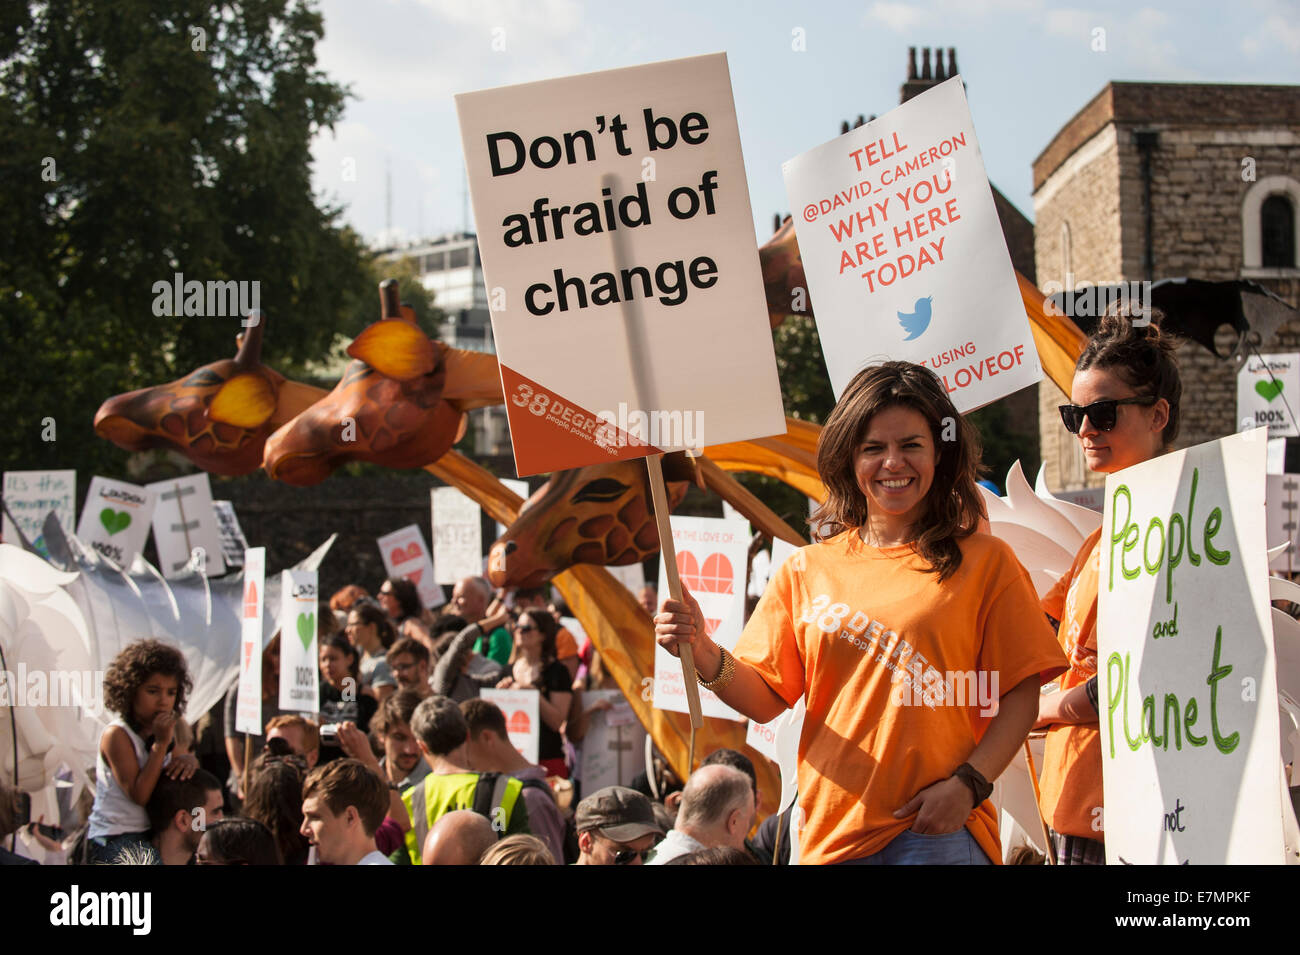 A demonstrator holds a placard which says 'Don't Be Afraid Of Change' as she marches in front of the - Stock Image